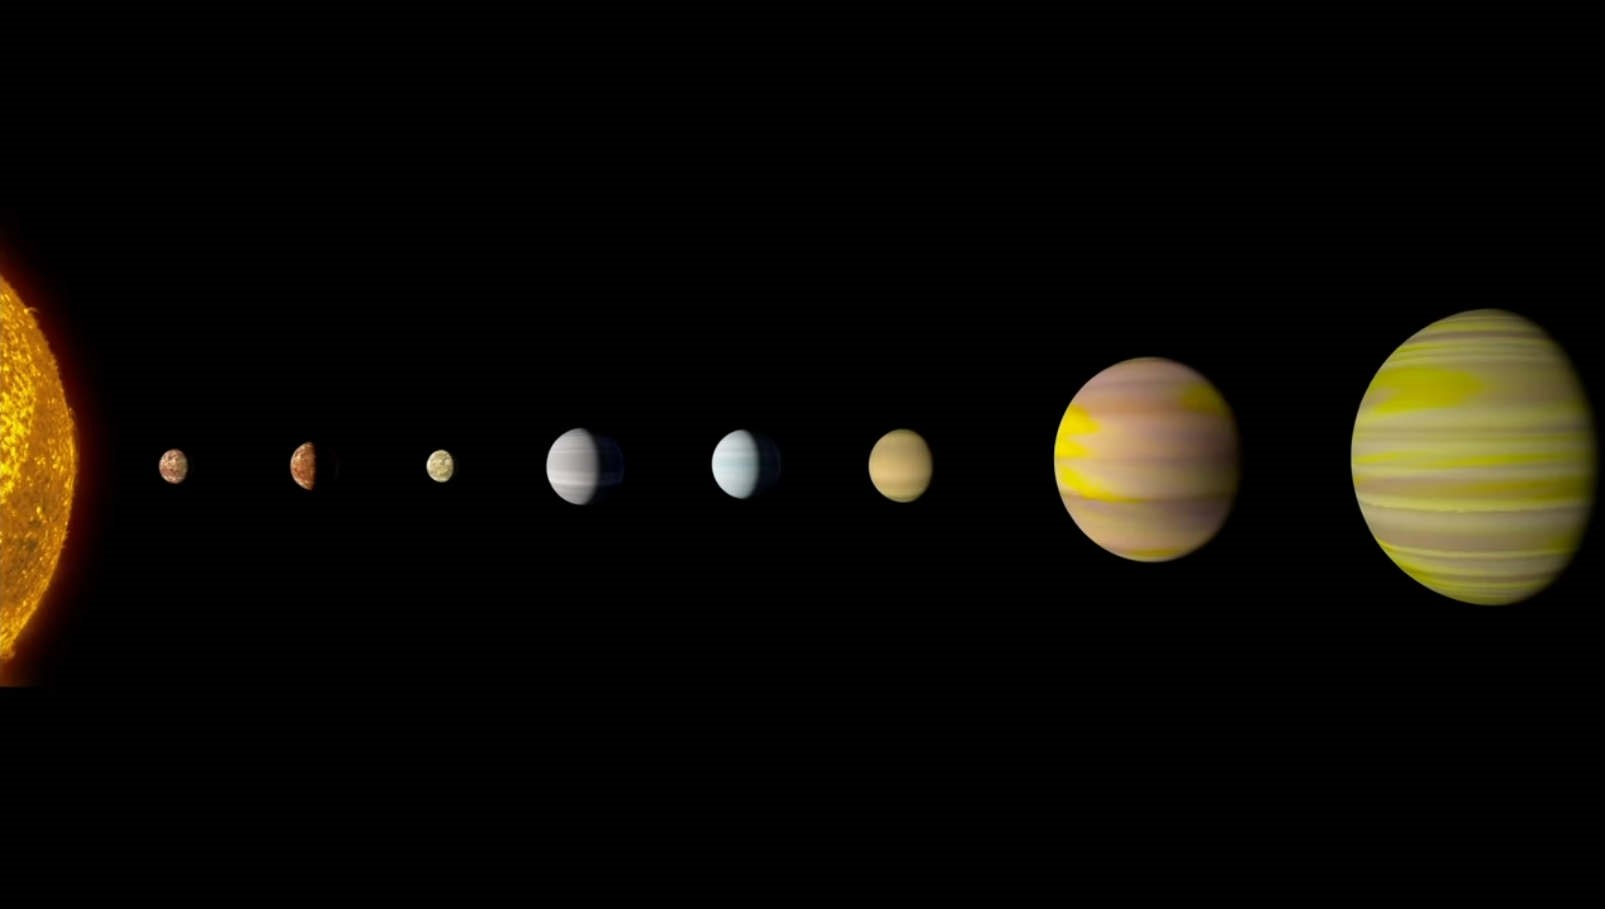 Our Solar System Is Weirder Than You'd Think